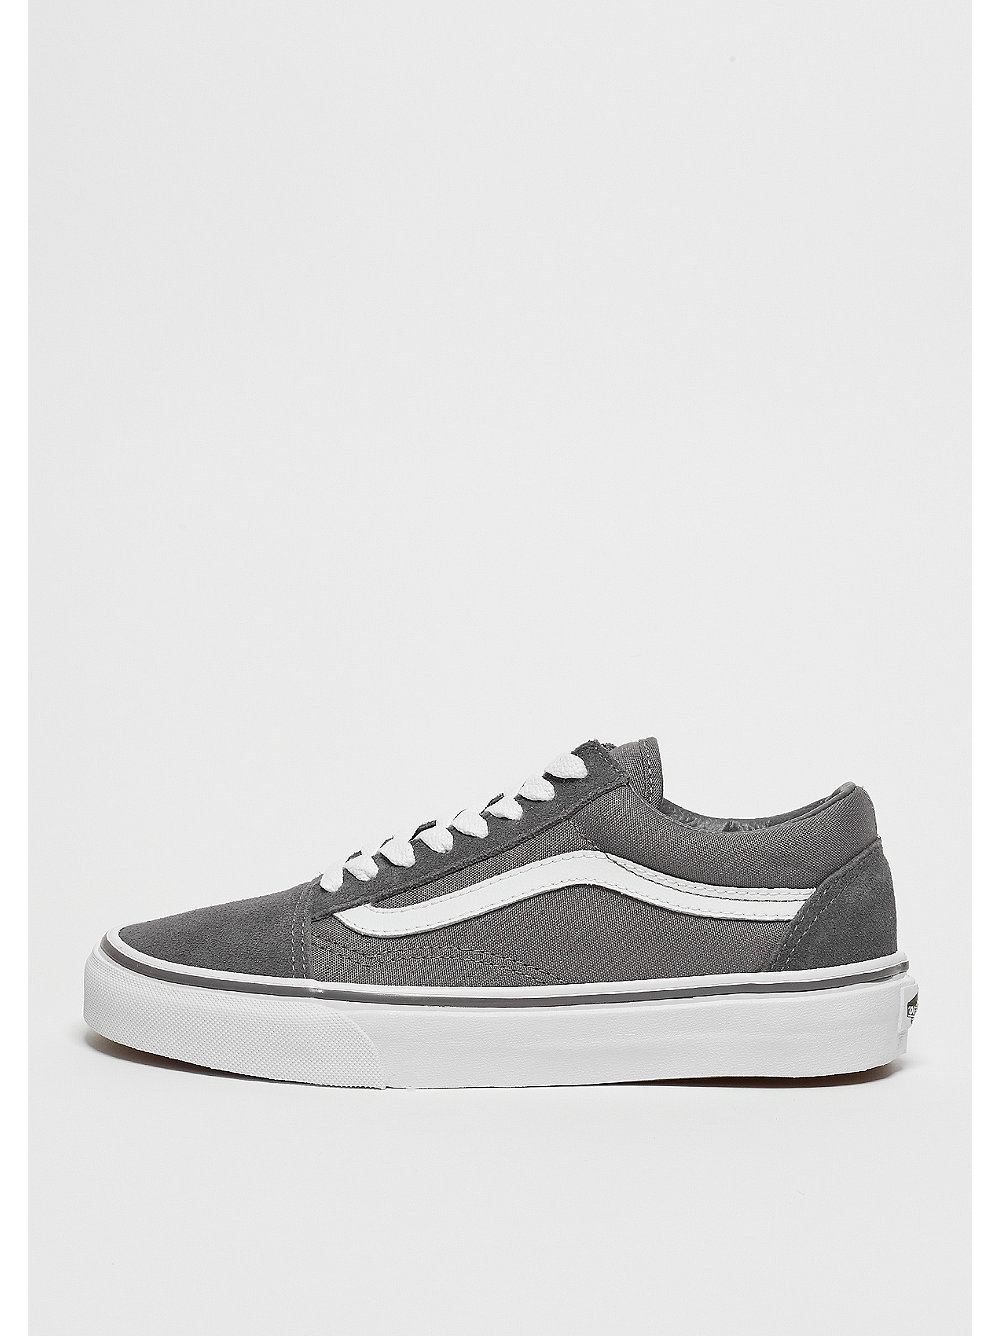 vans old skool wildleder grau